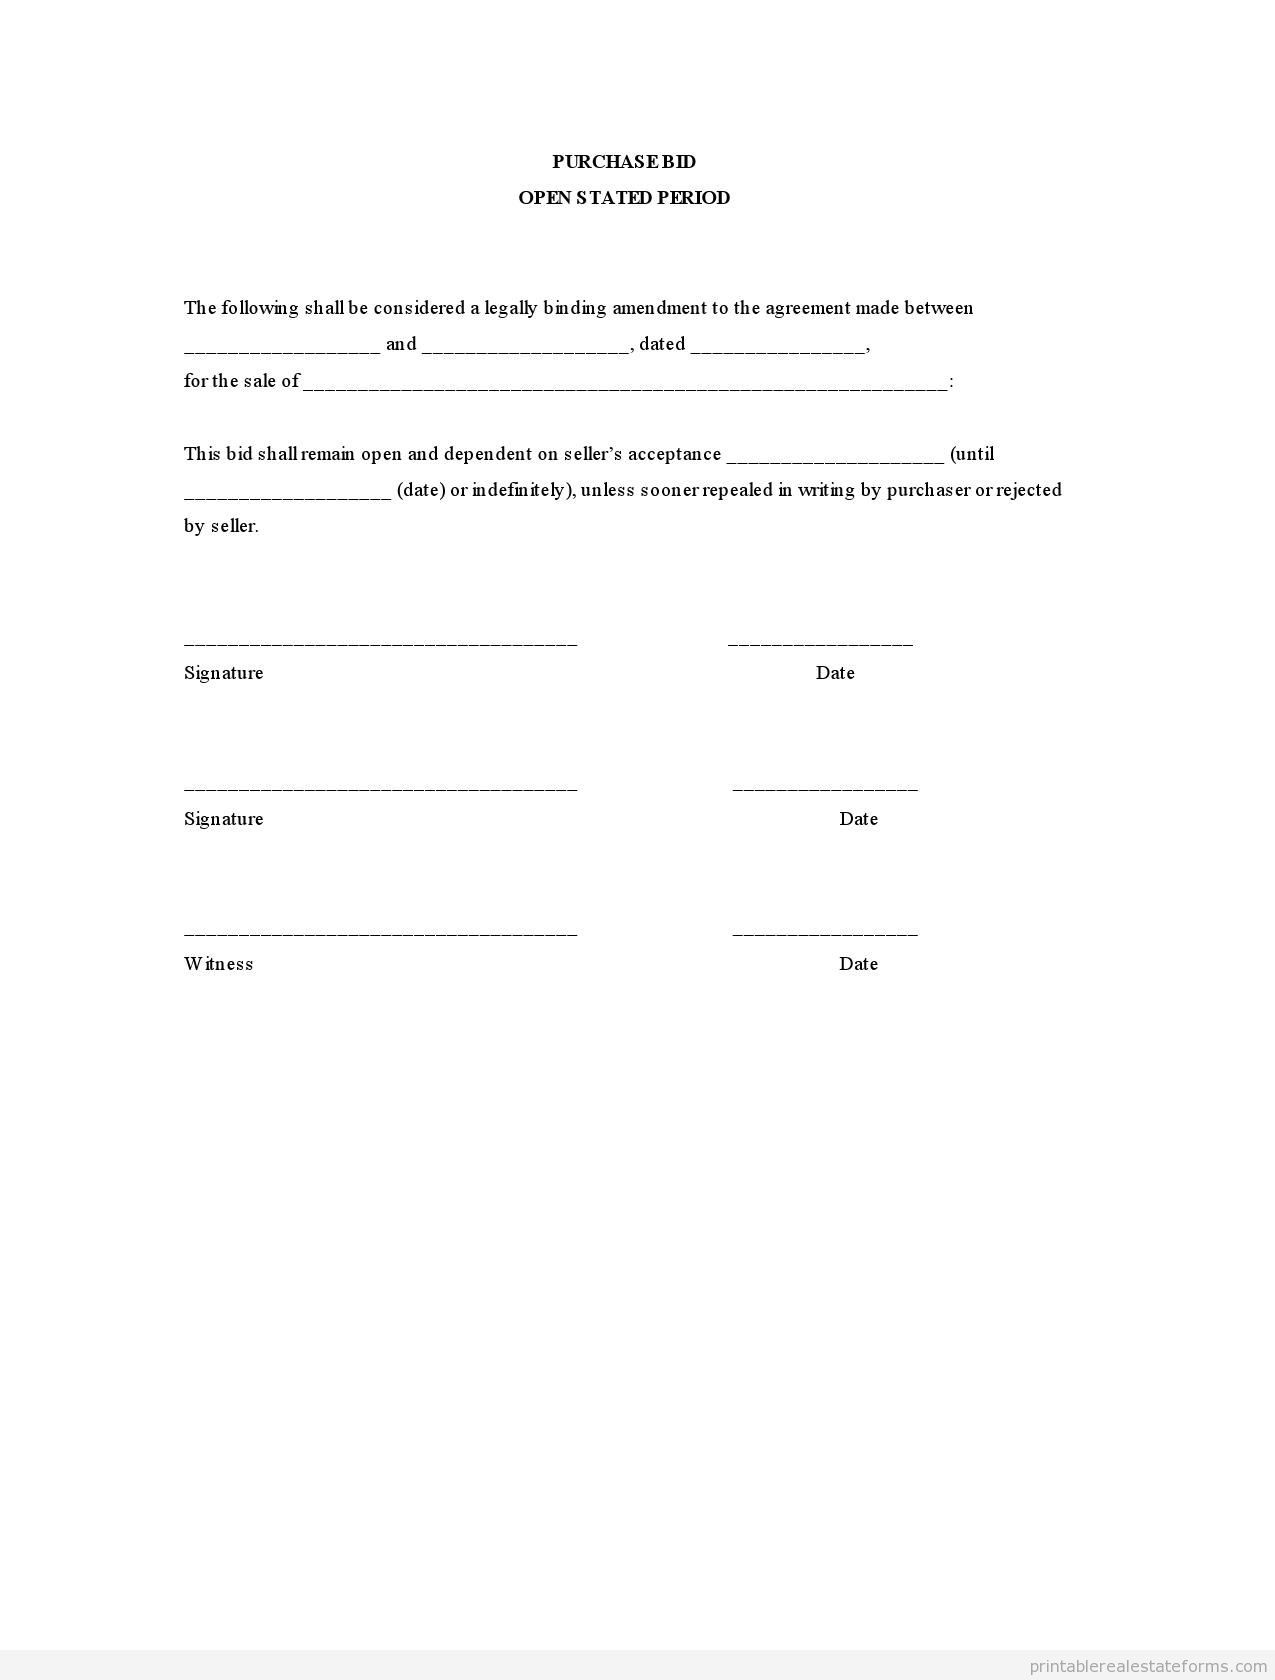 Sample Printable Purchase Bid Open Stated Period Form  Sample